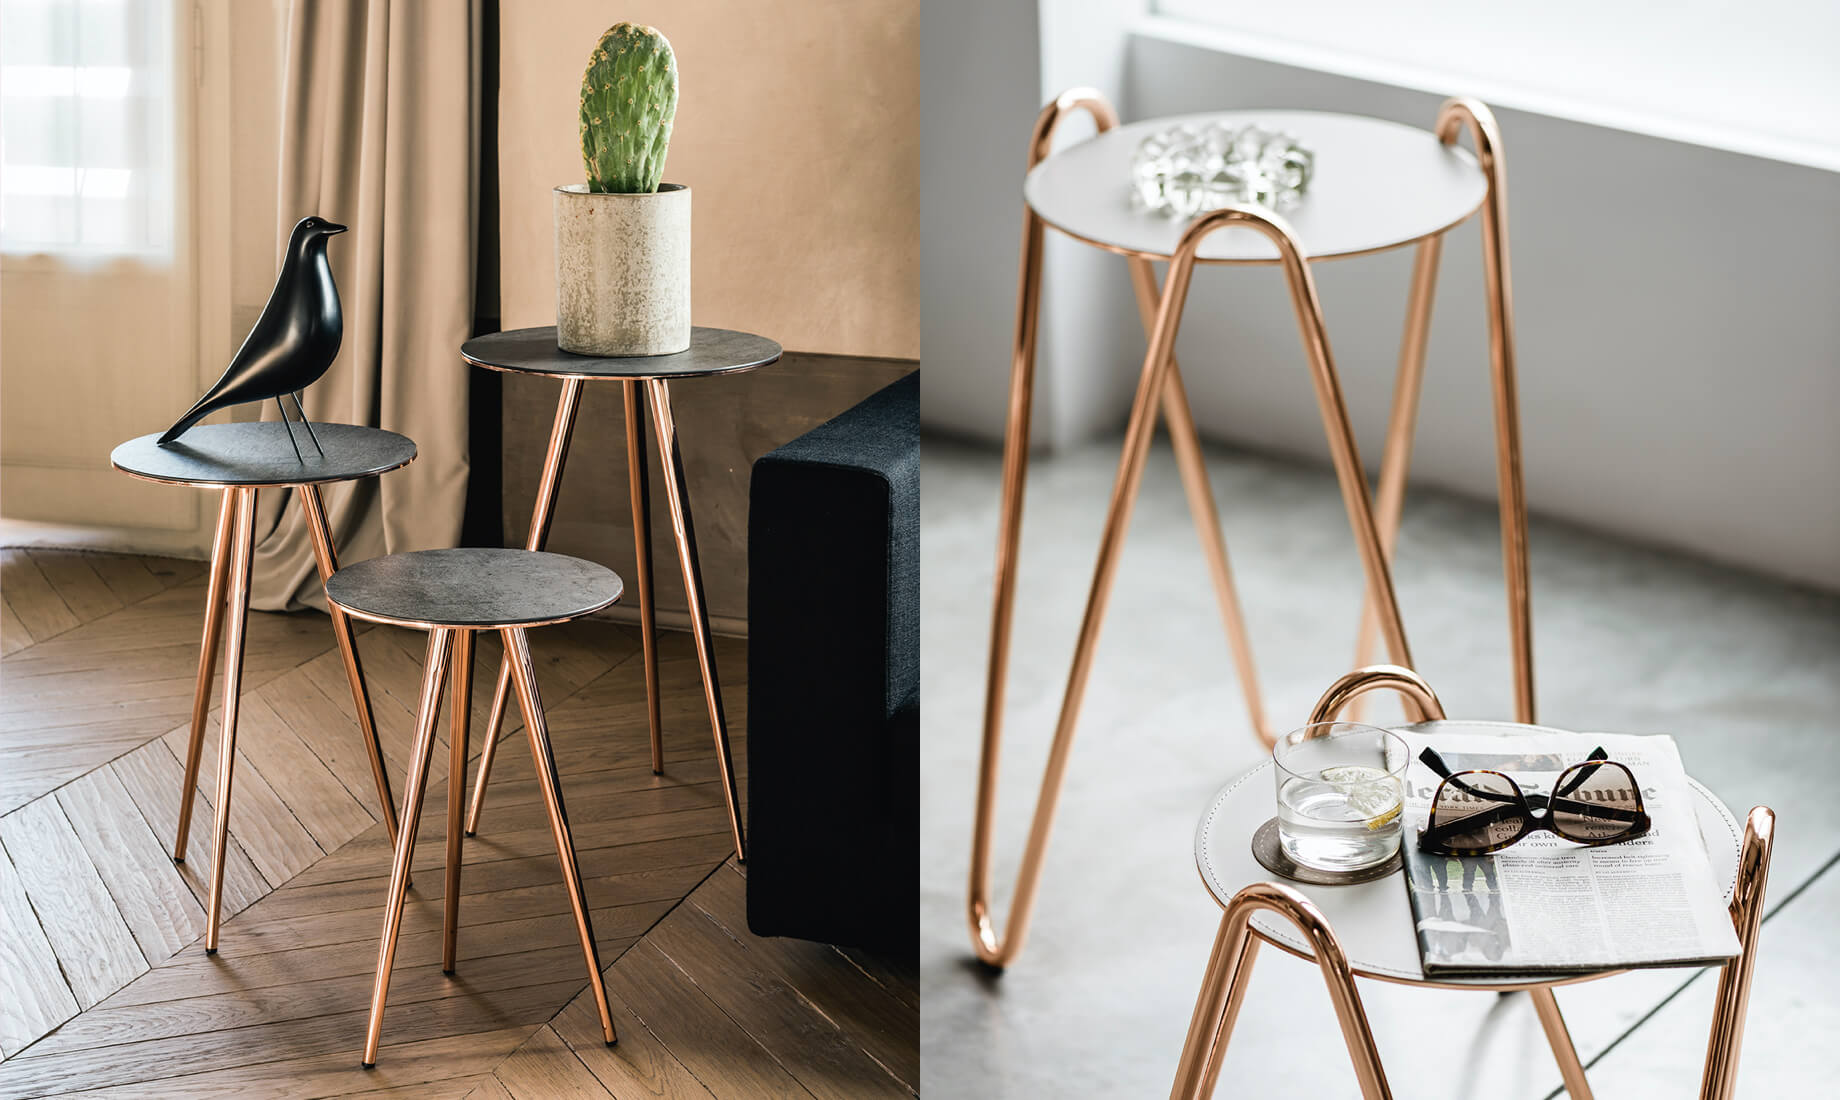 Midj - Coffee table a side table Trip e Apelle